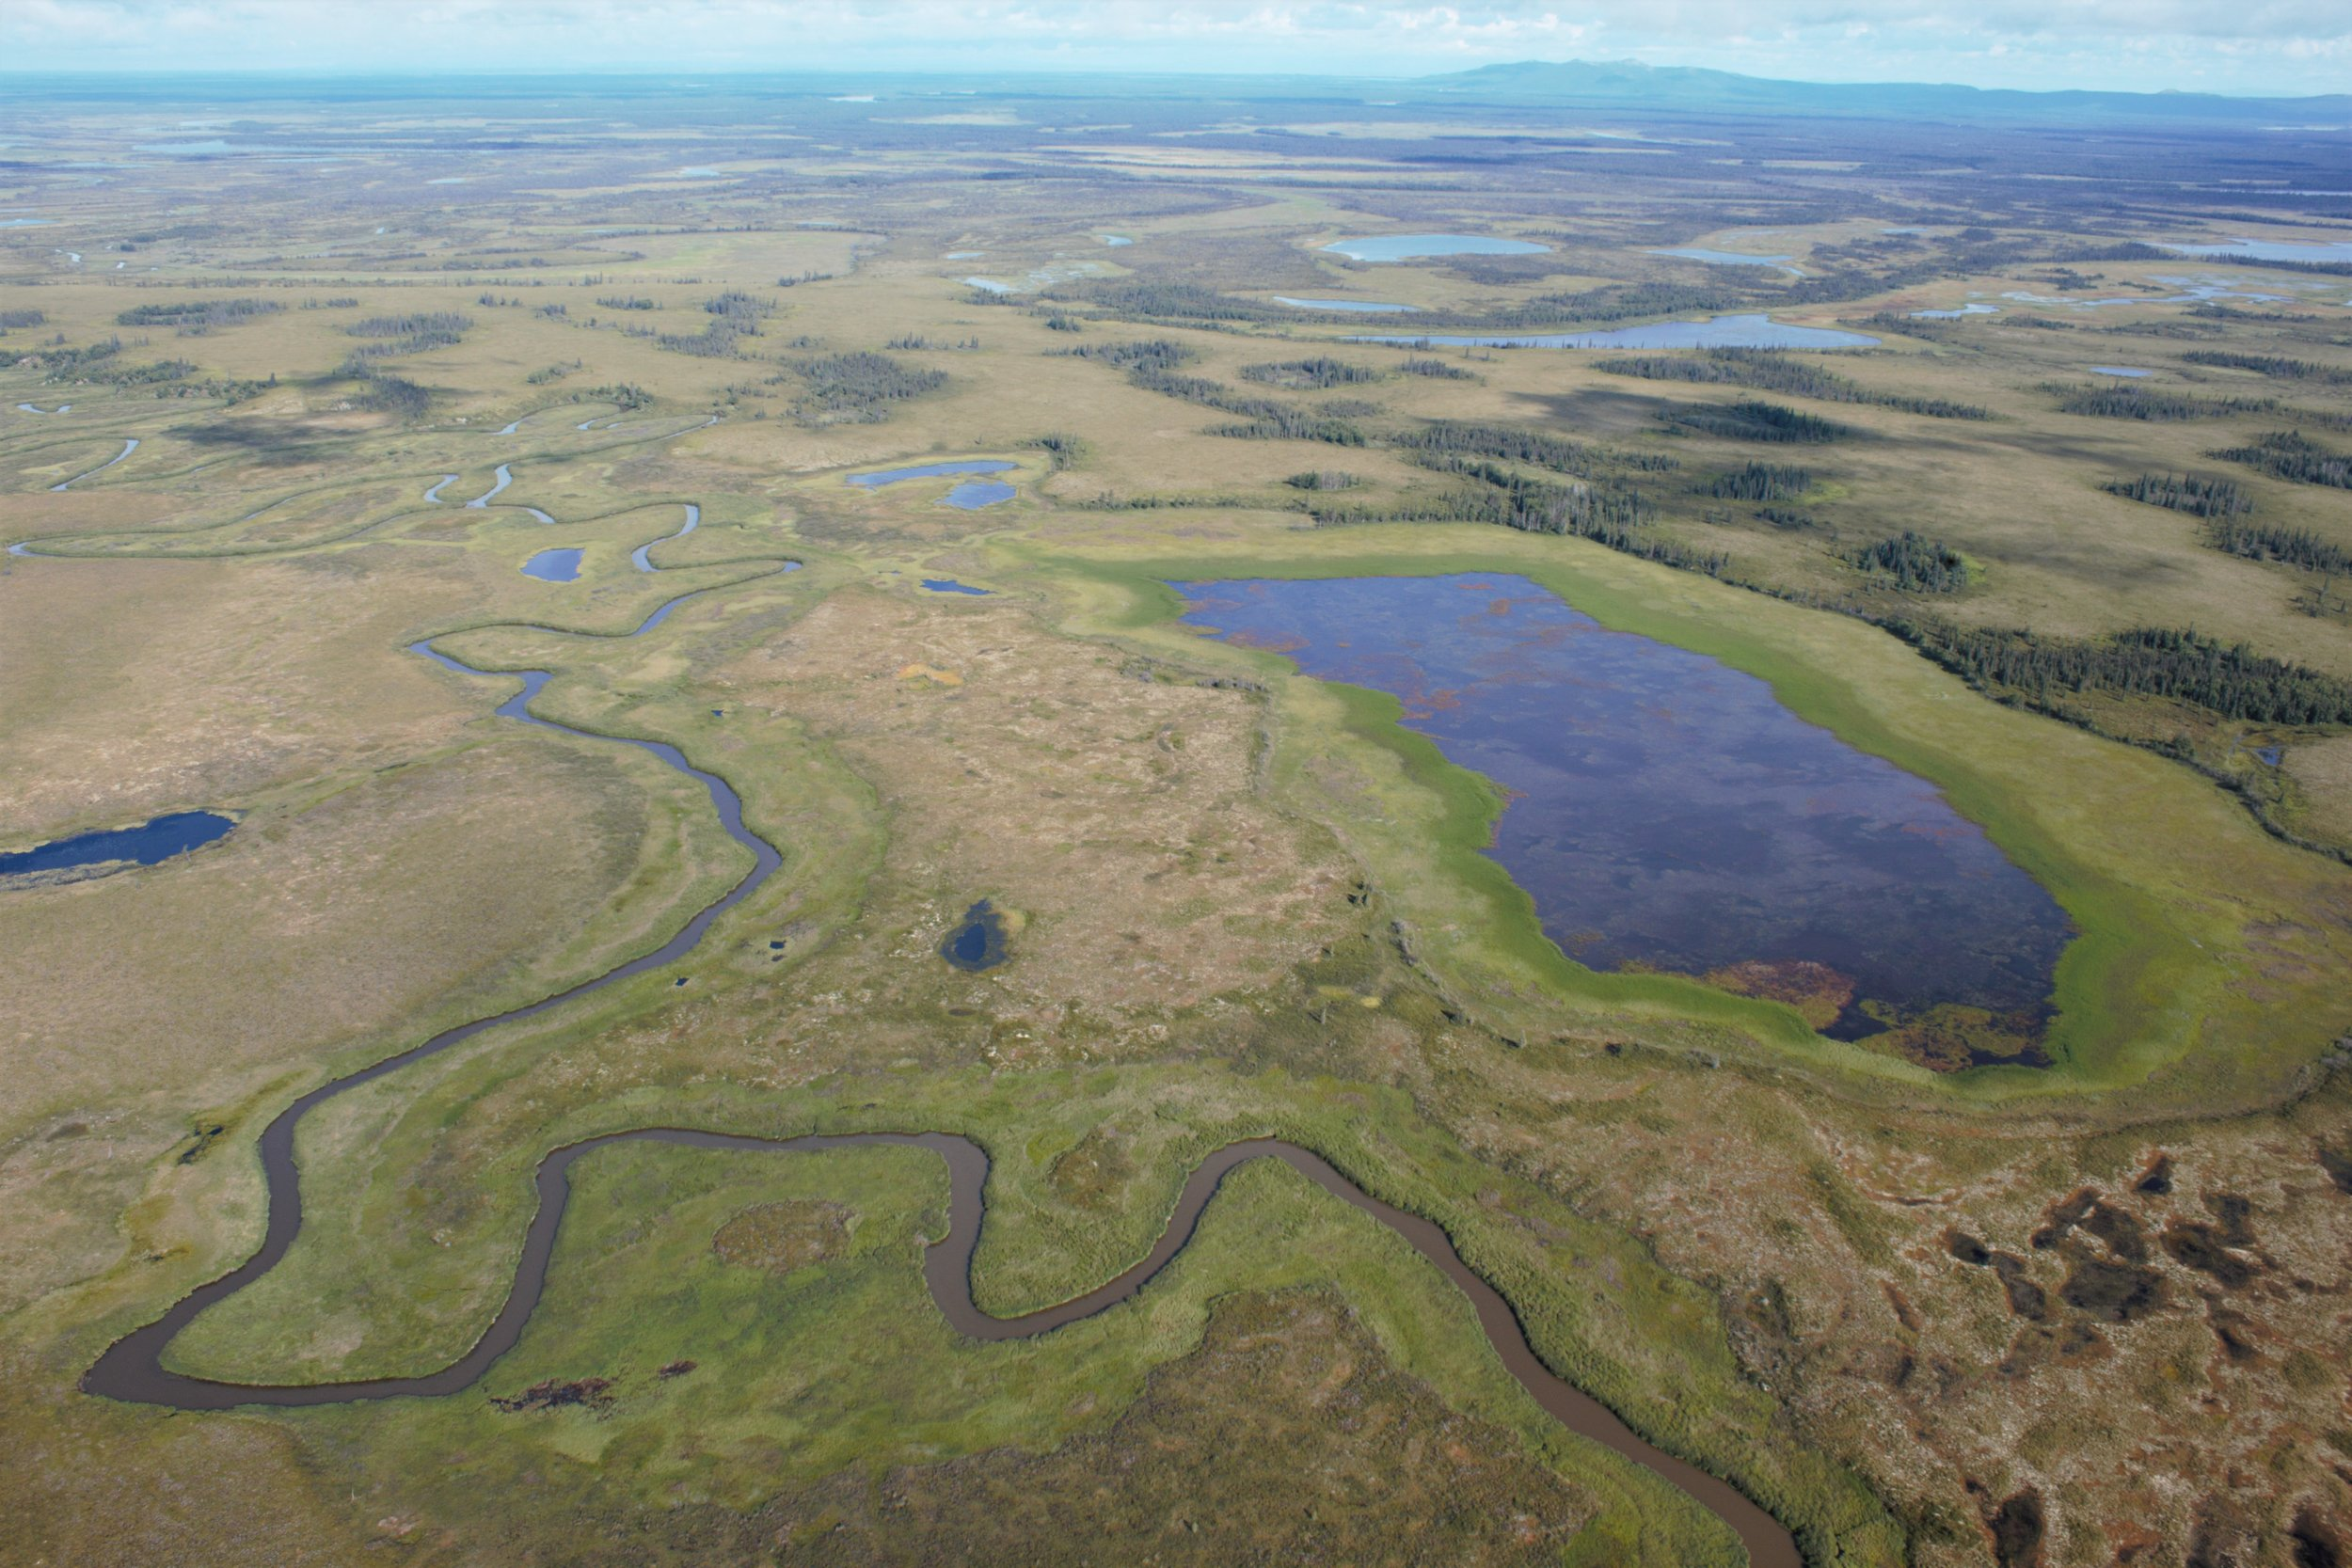 Example of the complex wetland landscape and hydrography in the Kuskokwim River Drainage.  Photo Credit: Kevin Stark